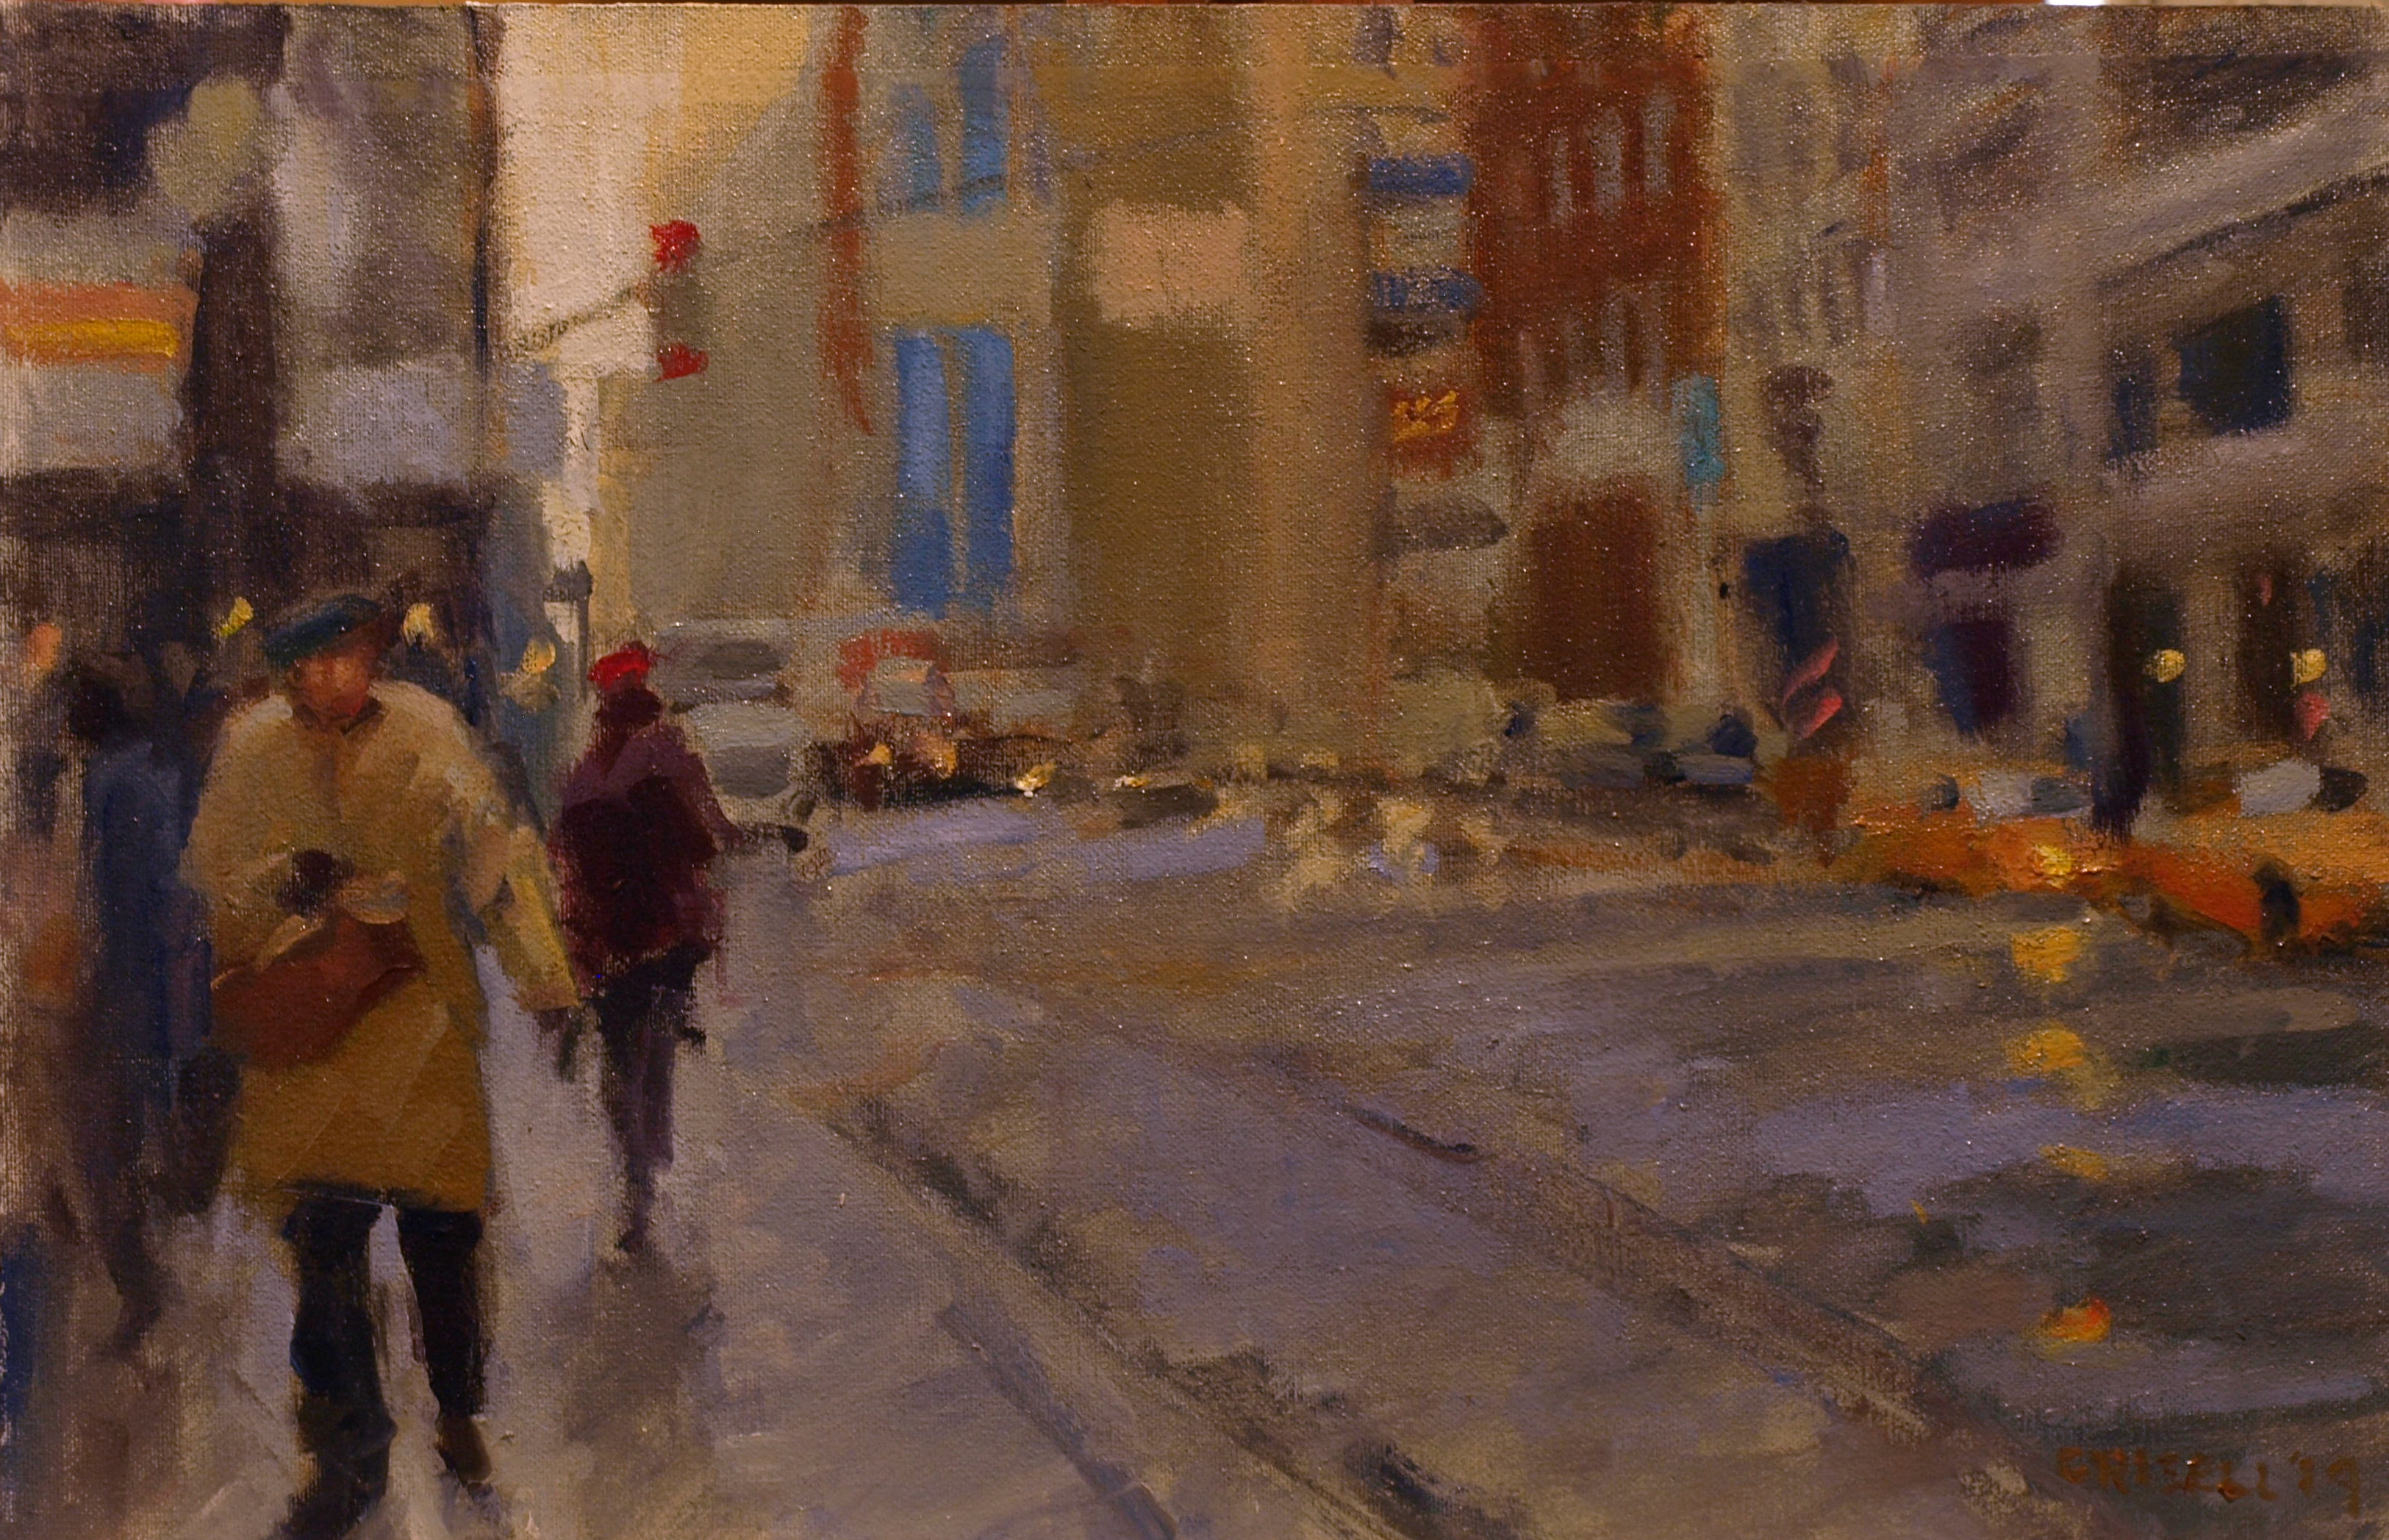 Busy Sidewalk, Oil on Canvas on Panel, 12 x 18 Inches, by Susan Grisell, $350